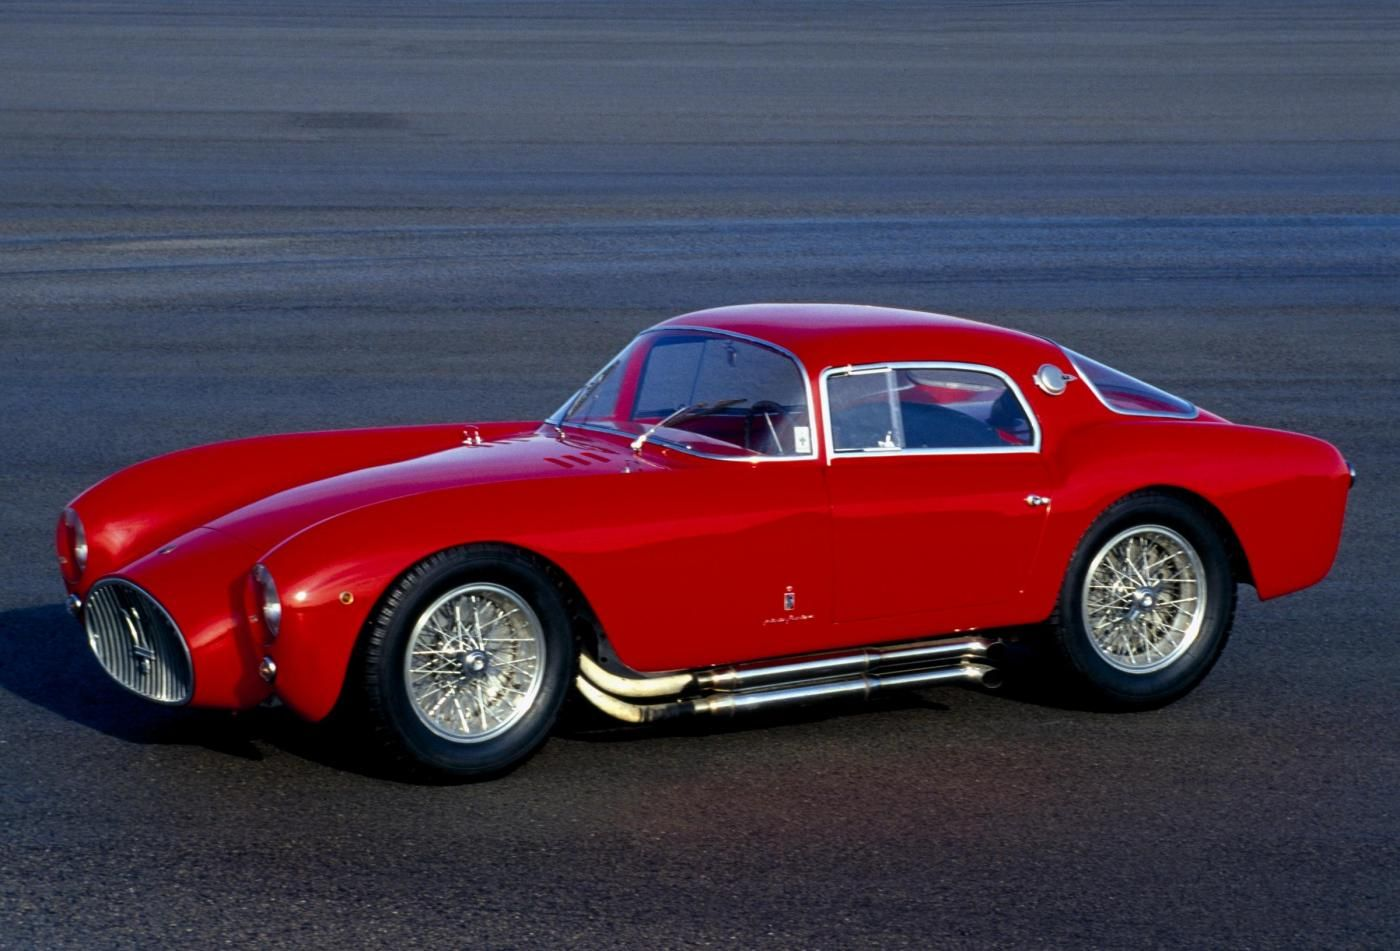 1953 Maserati 2000 Sport - A6GCS Berlinetta - exterior view of the classic 2-seater